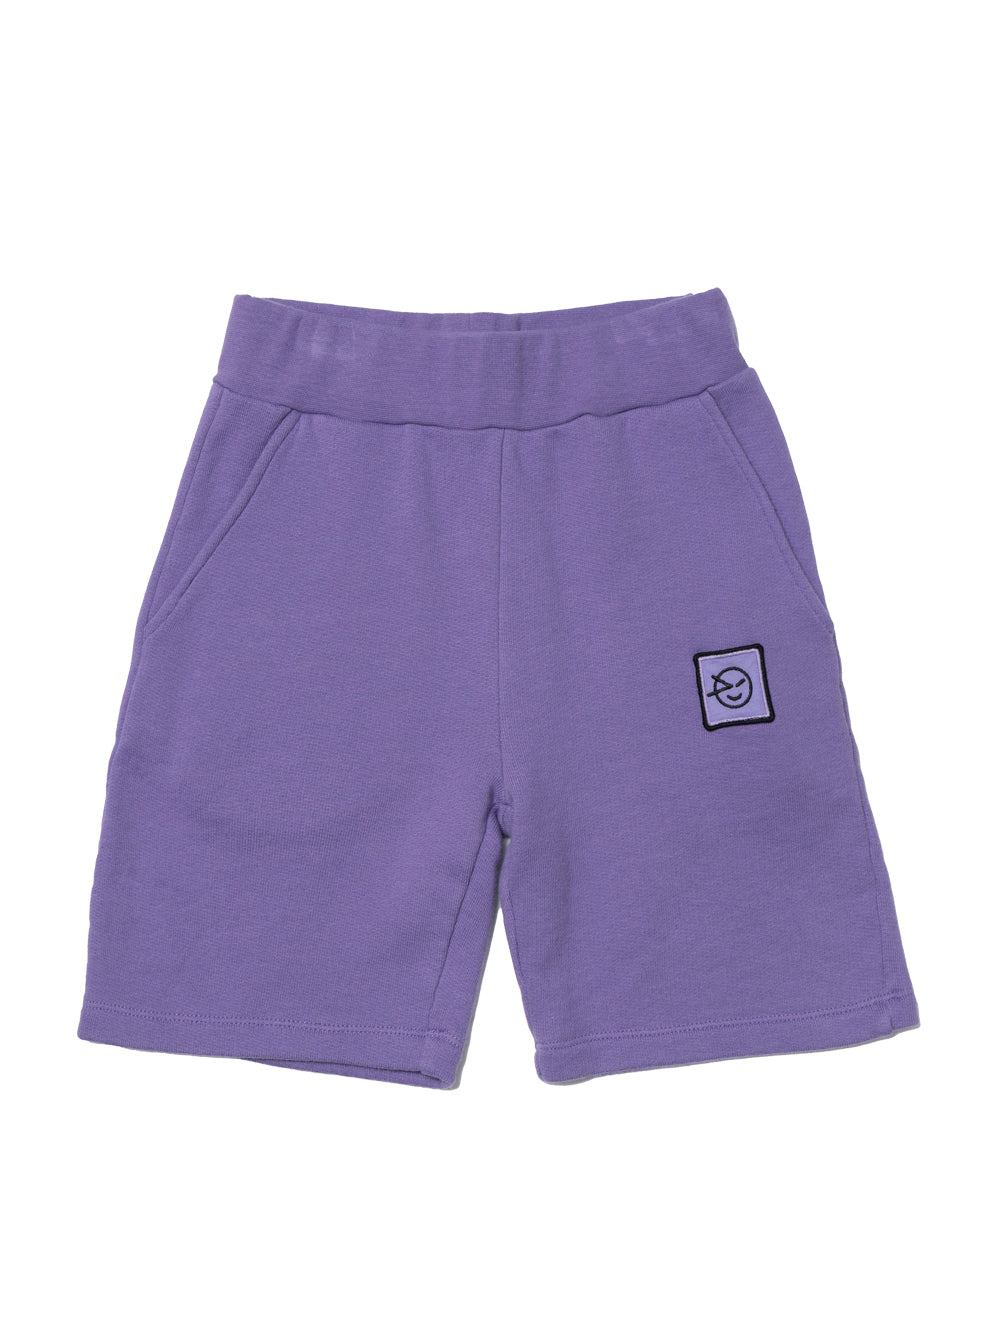 Purple Track Shorts